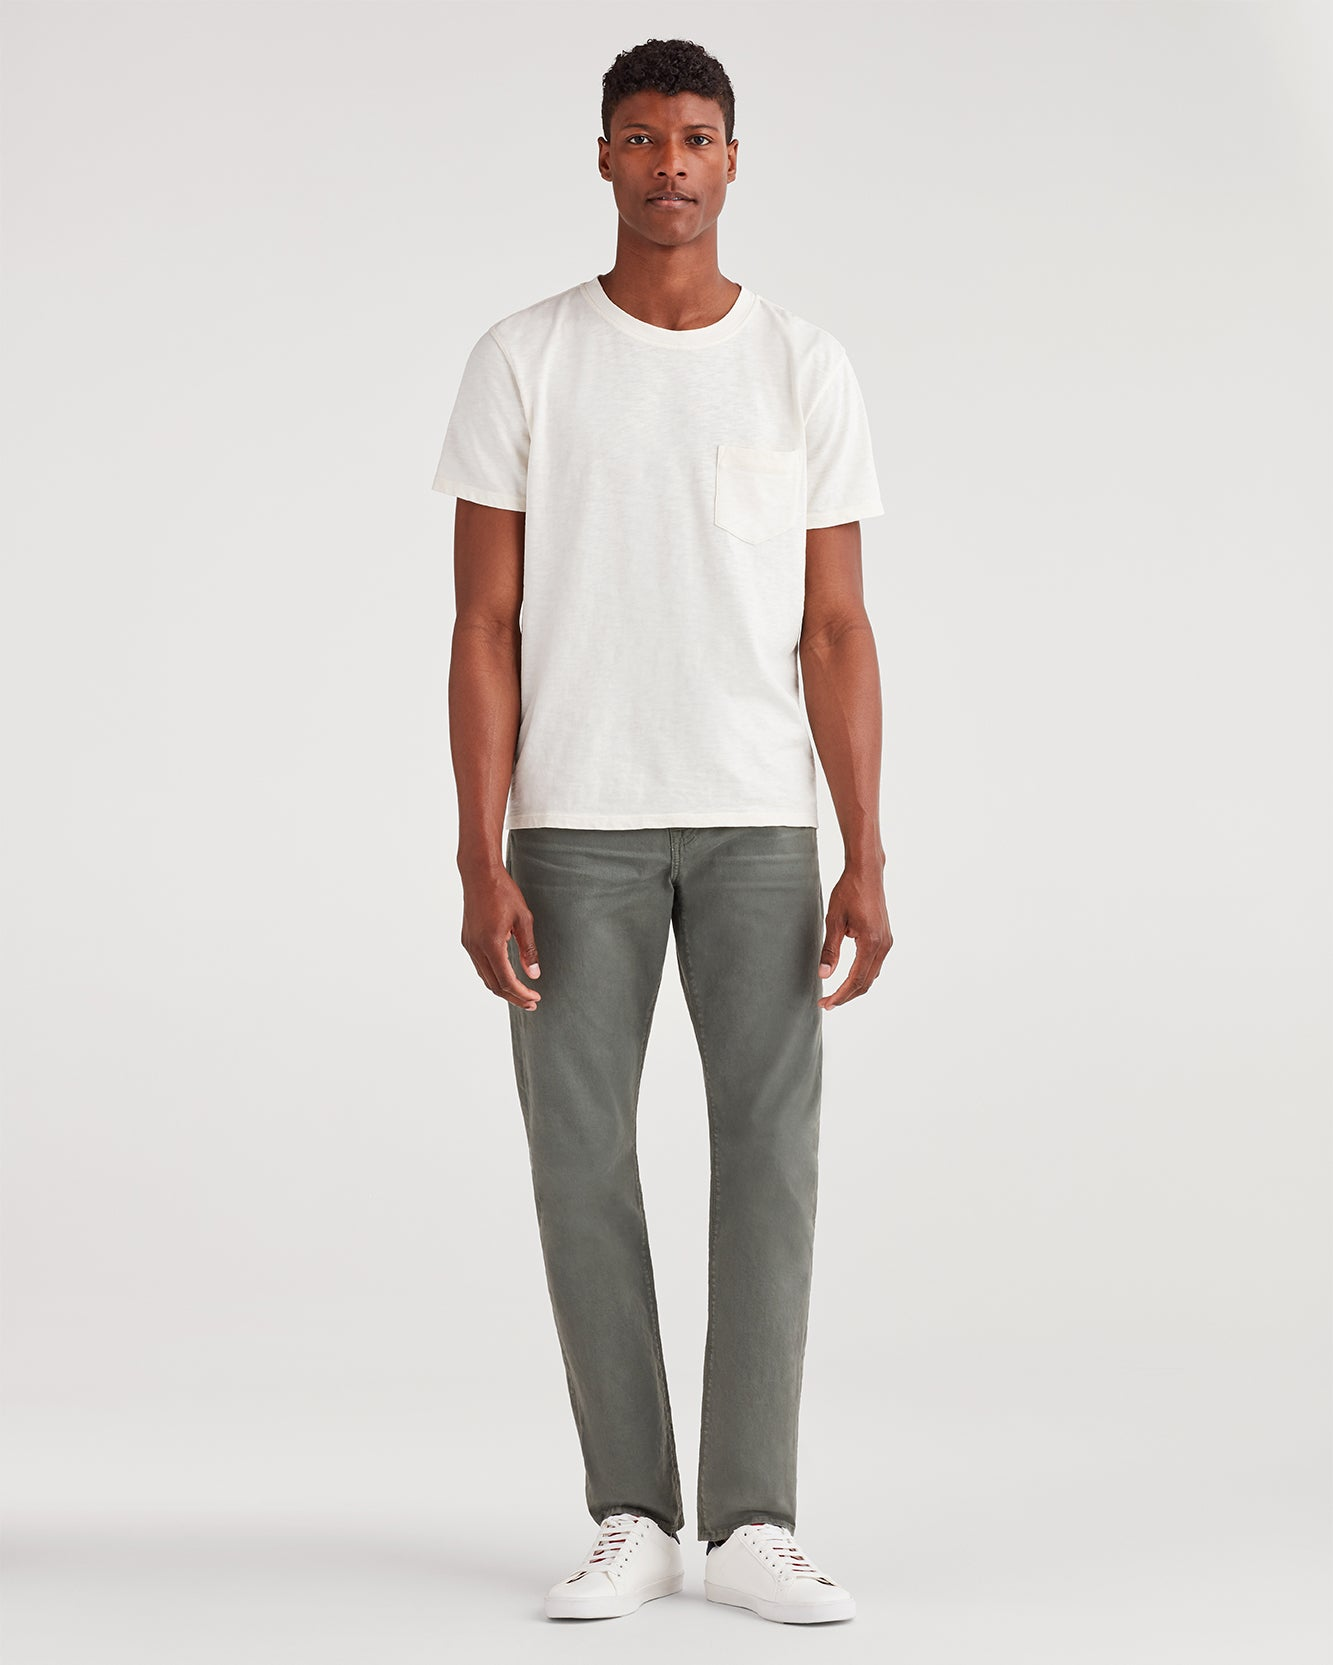 Image of Total Twill Adrien with Clean Pocket in Faded Spruce